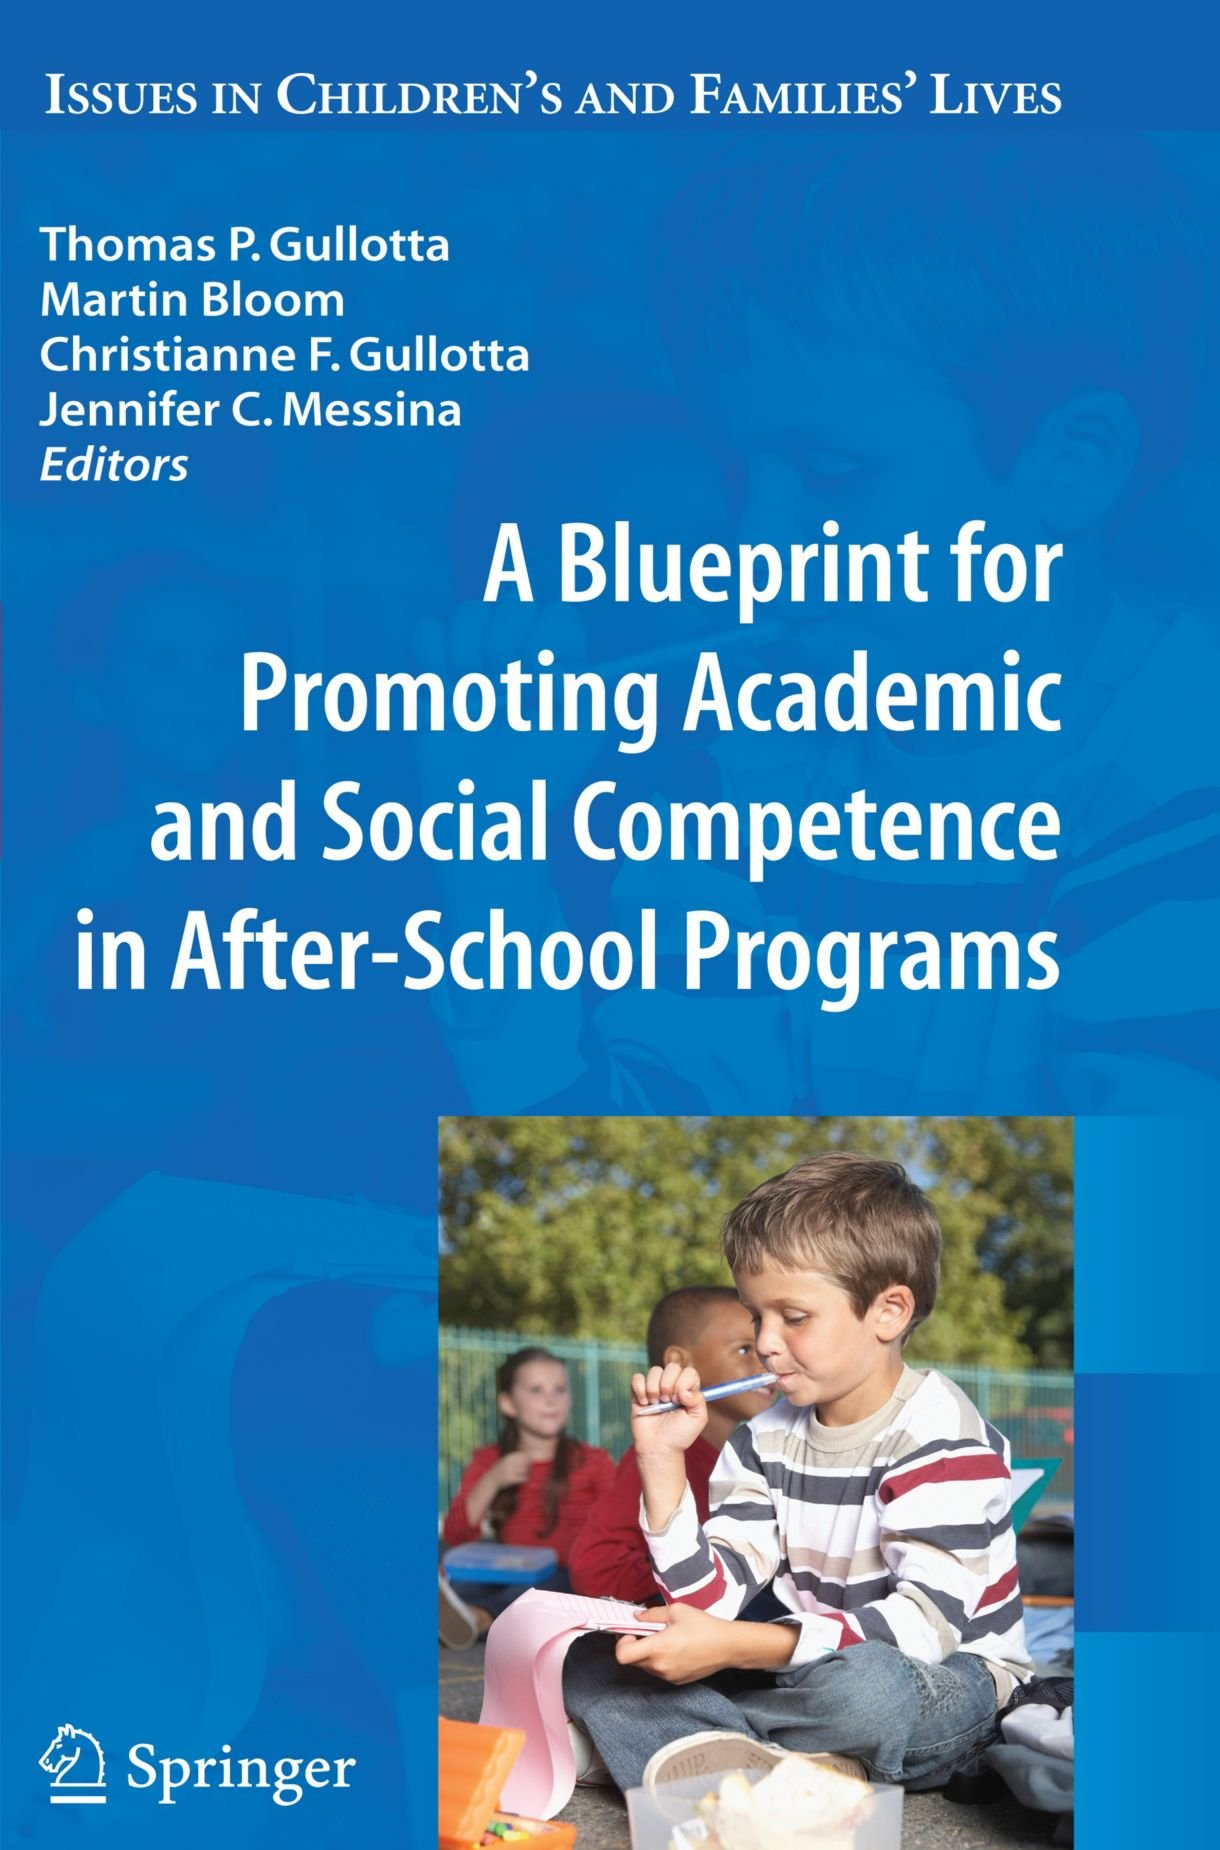 A Blueprint for Promoting Academic and Social